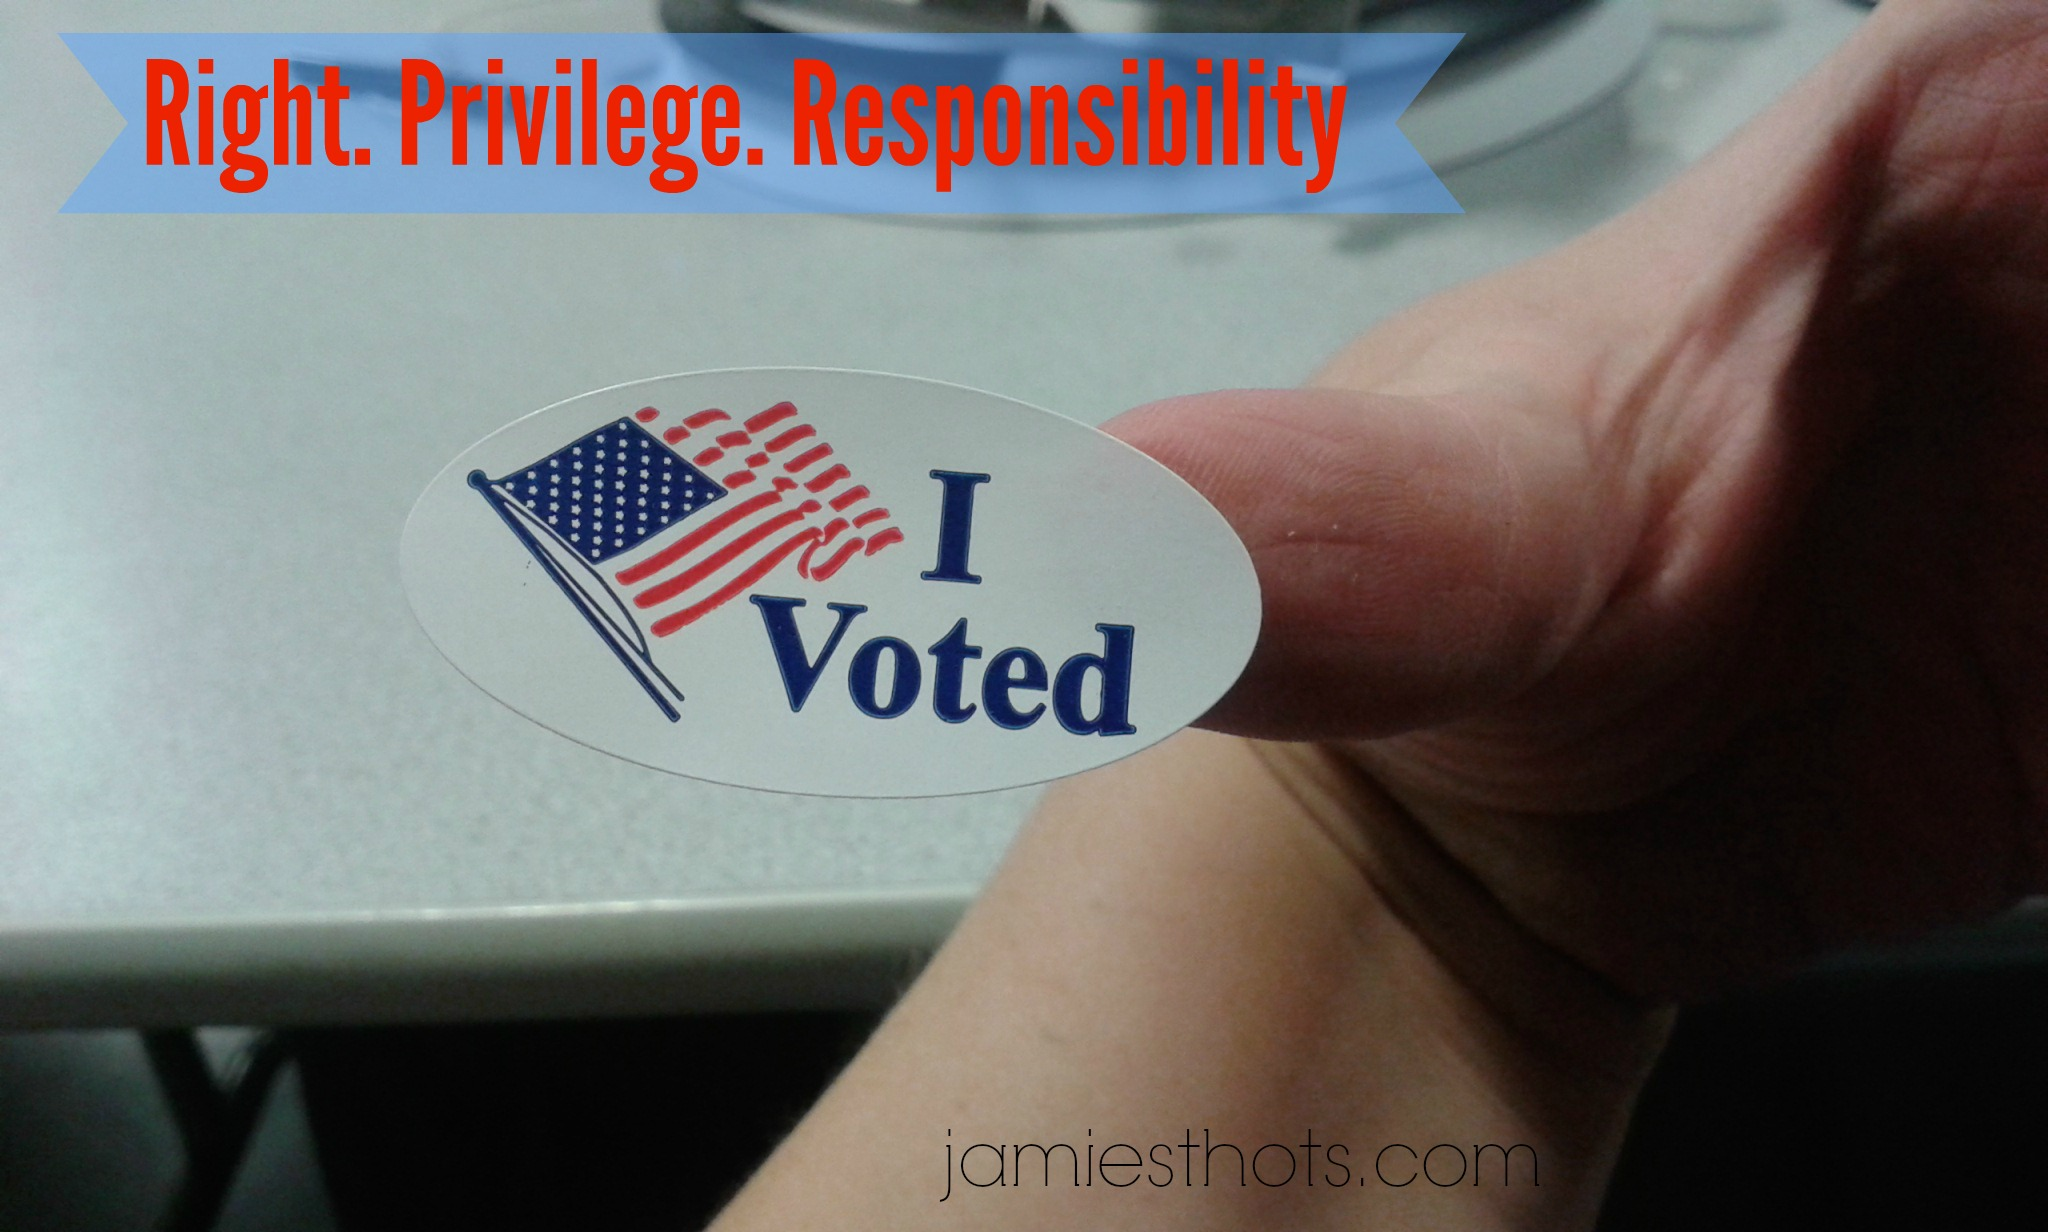 Voting is an amazing right, privilege and responsibility